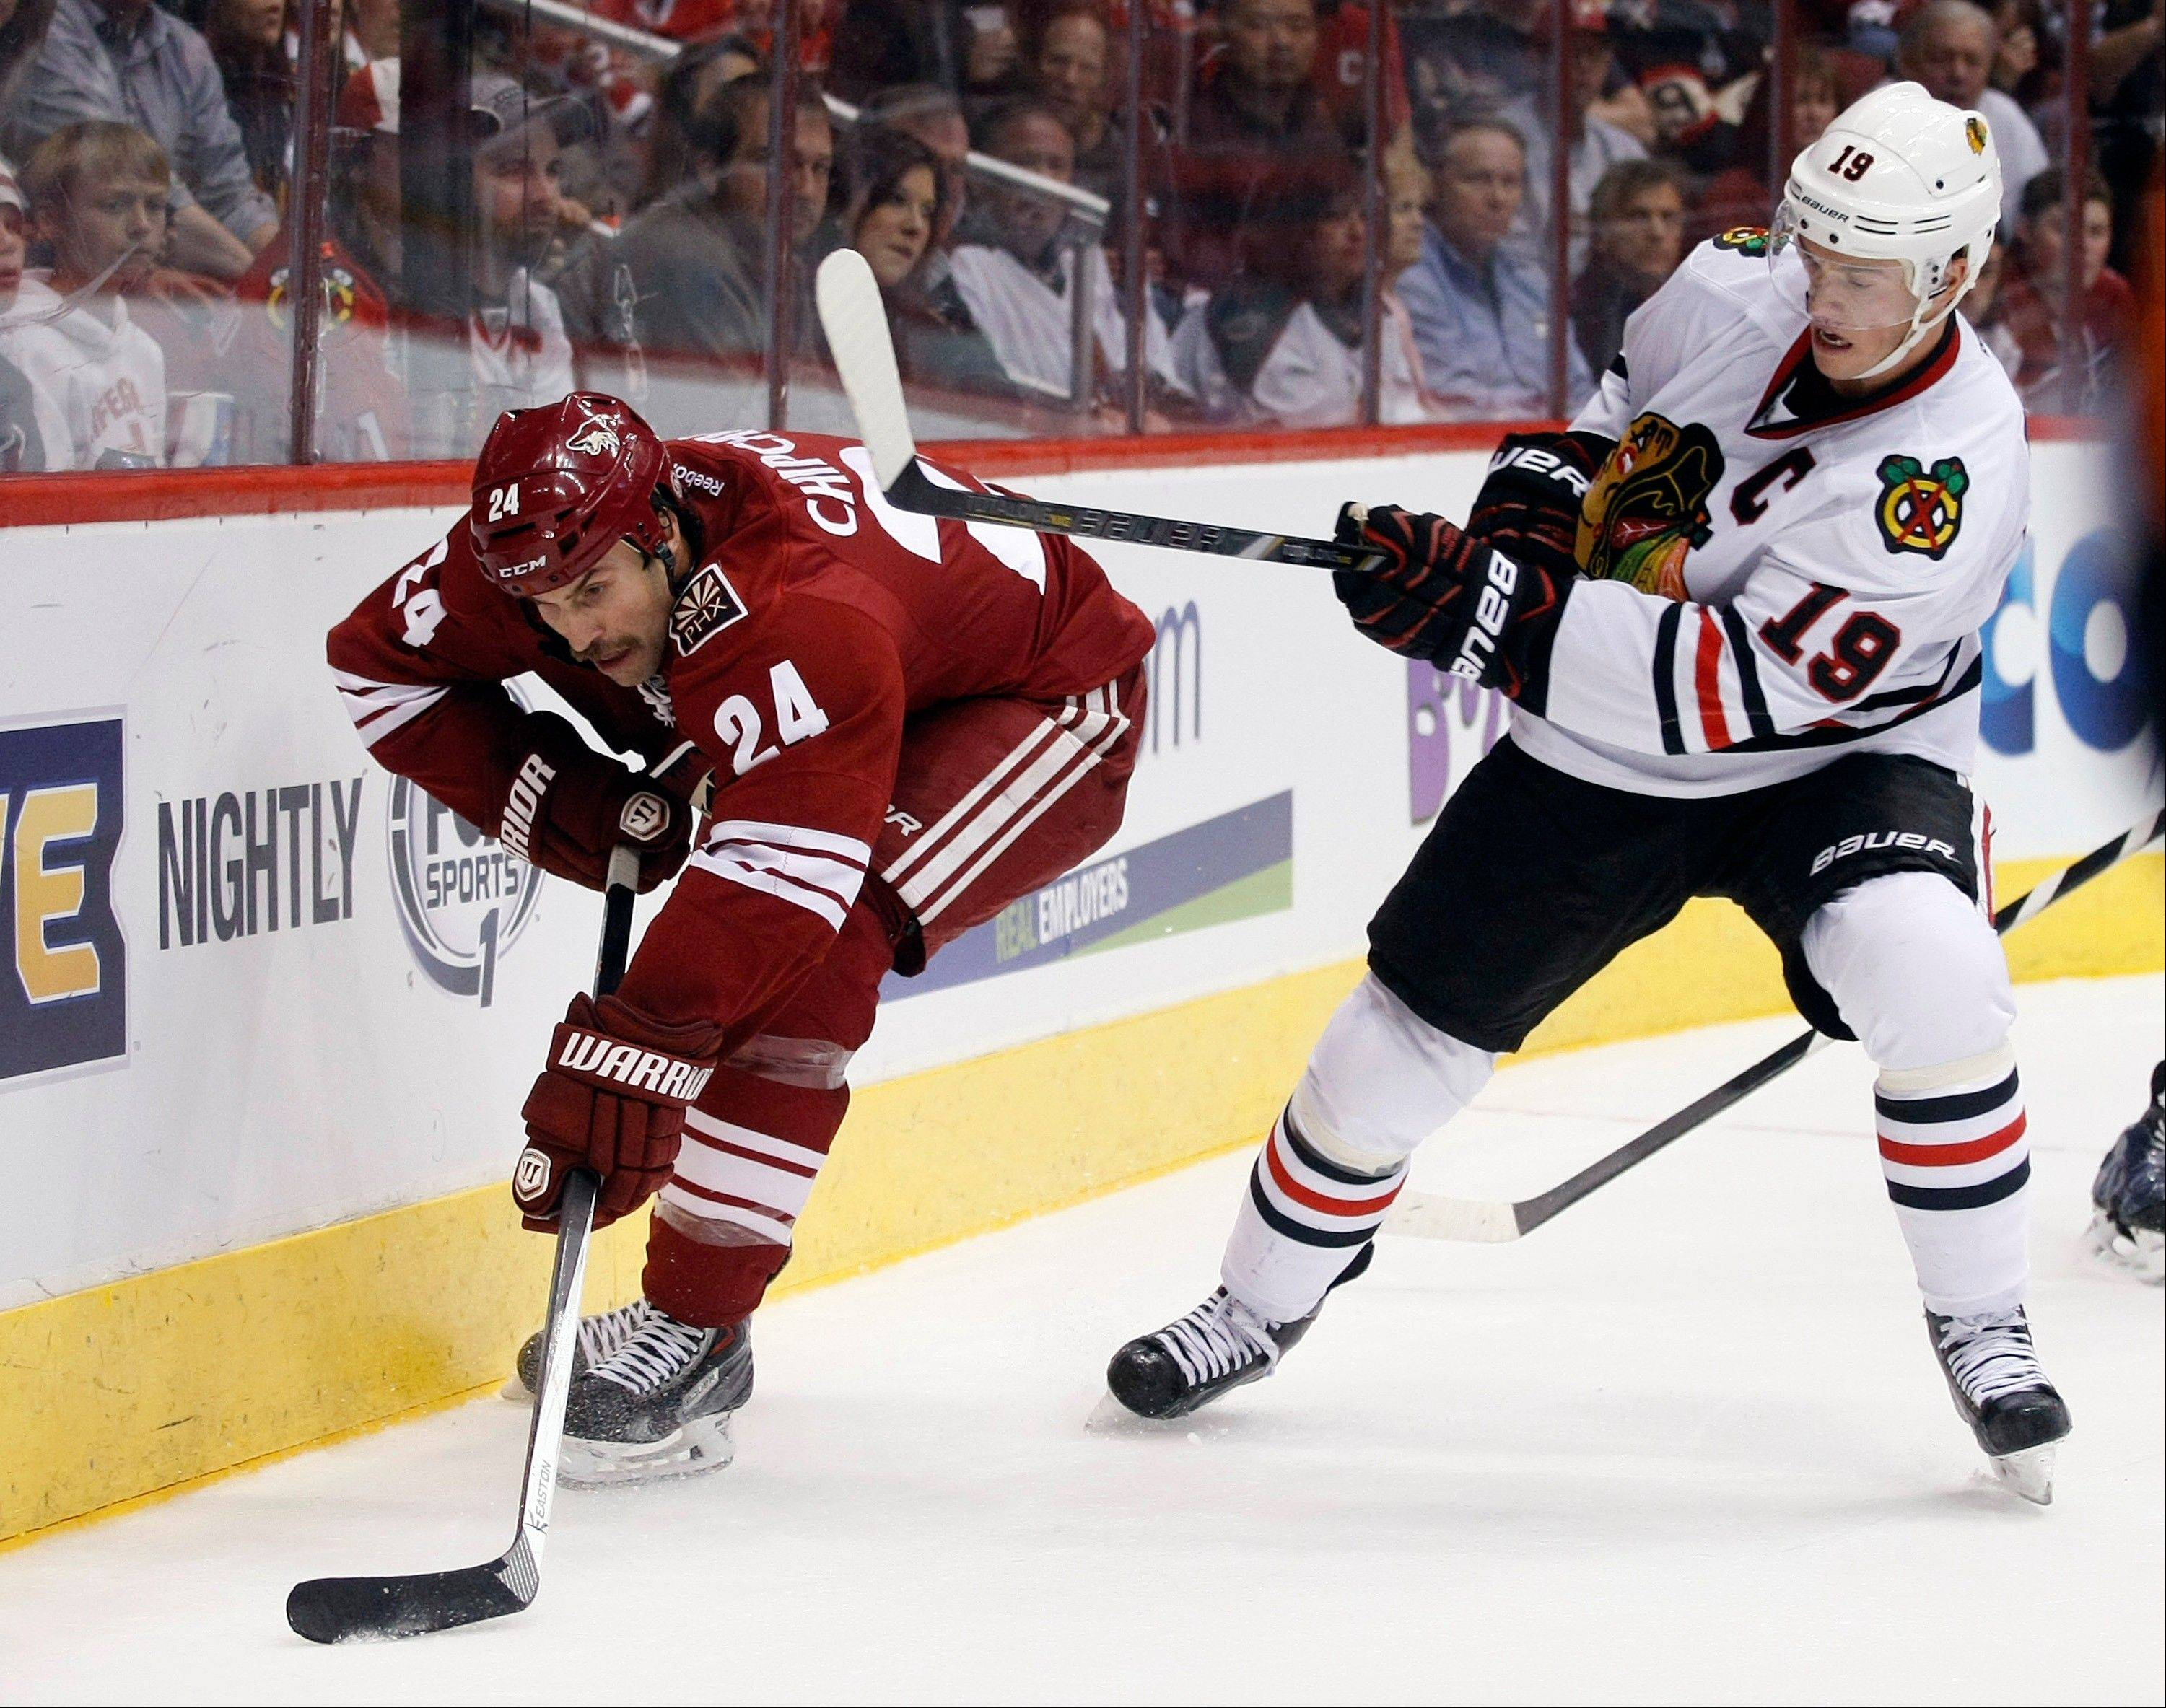 The Blackhawks' Jonathan Toews battles the Coyotes' Kyle Chipchura for the puck in the second period Saturday night.